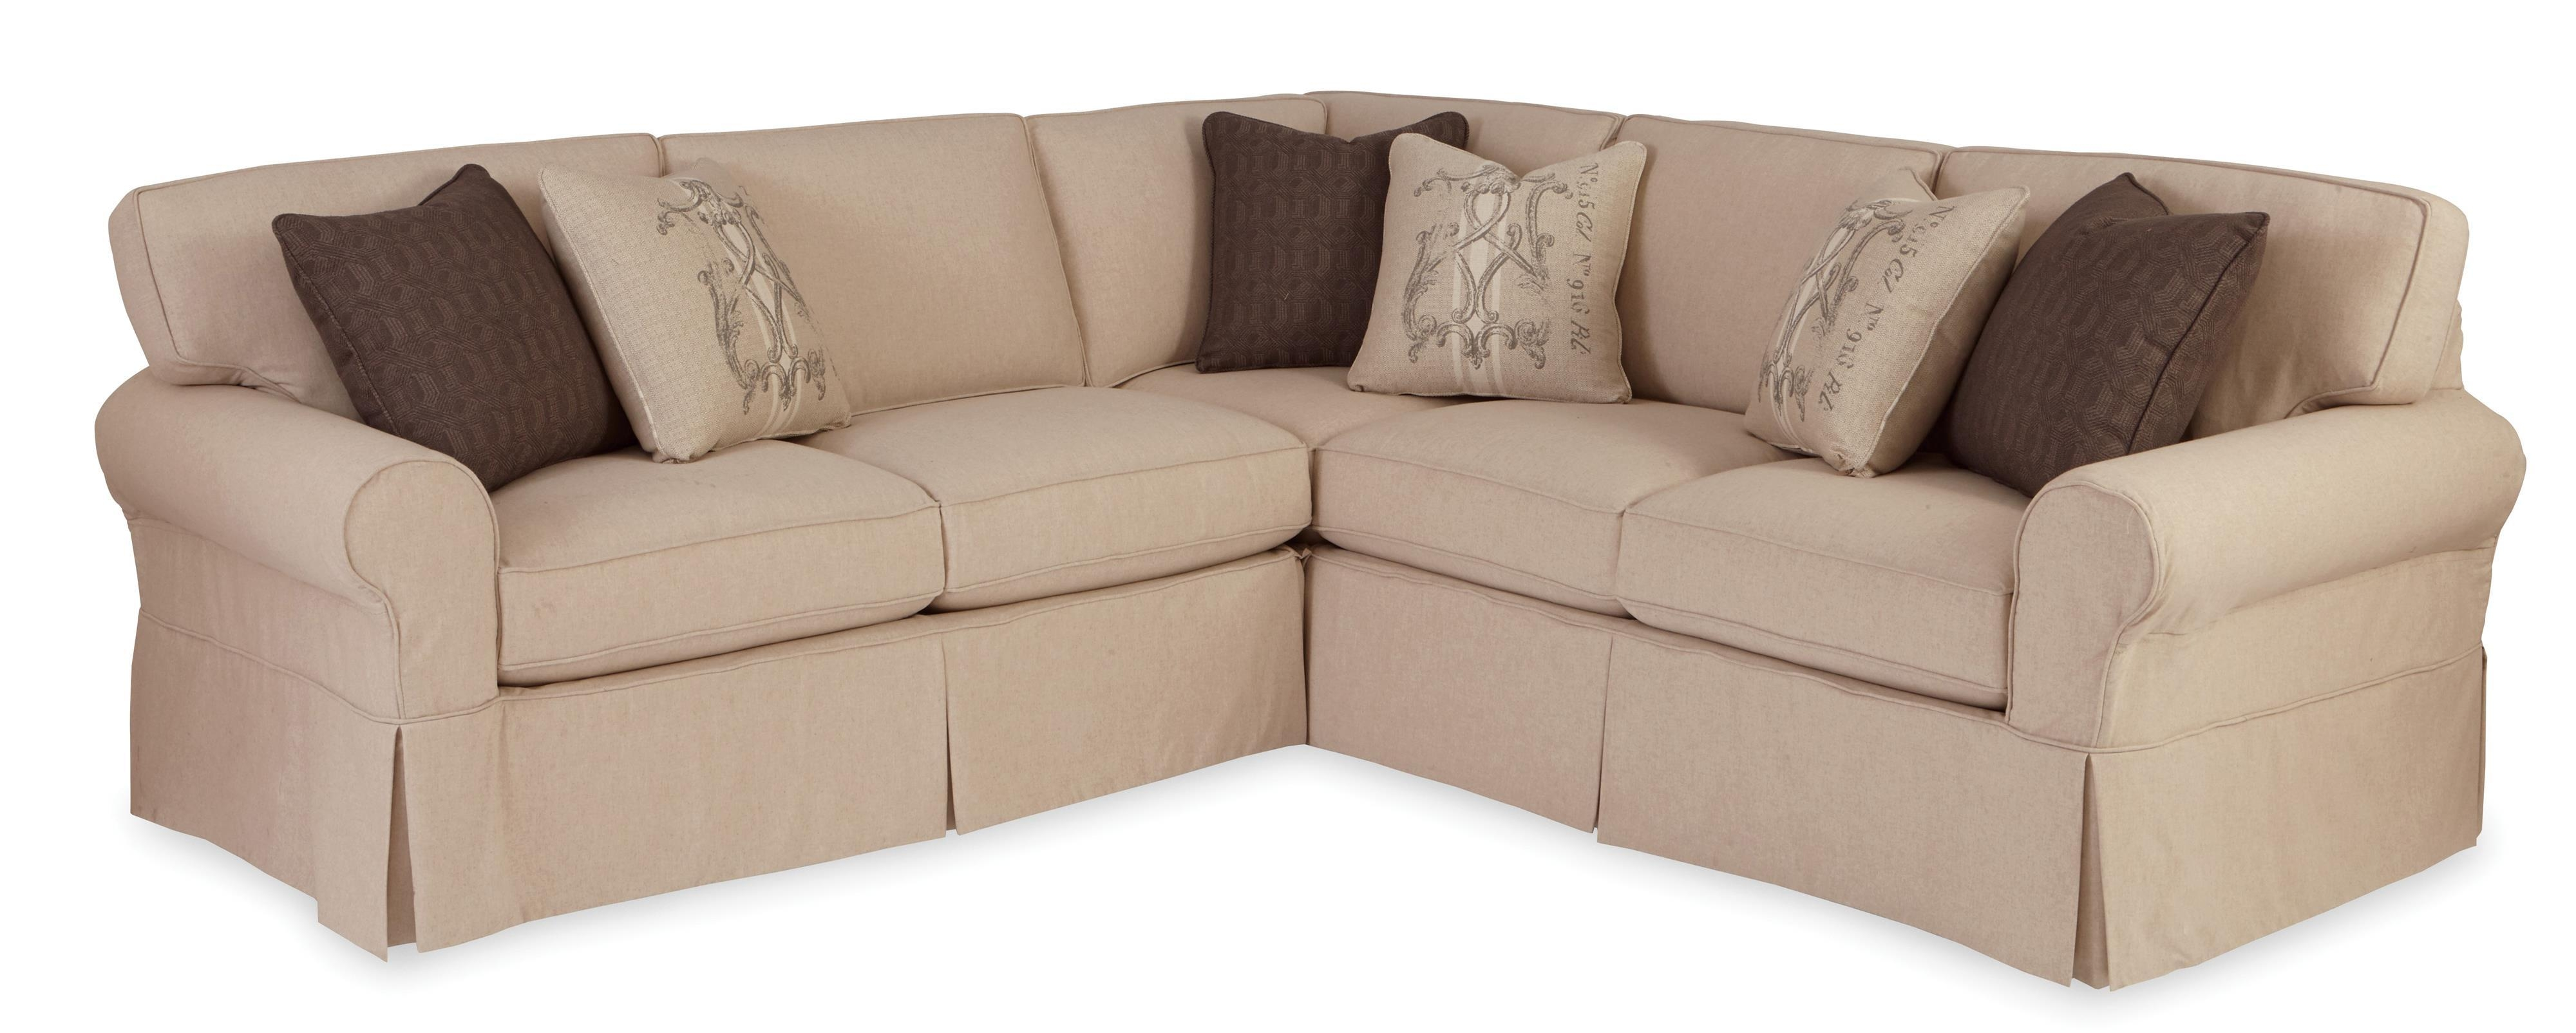 sofas and loveseats at big lots ikea sofa sectional 20 best ideas